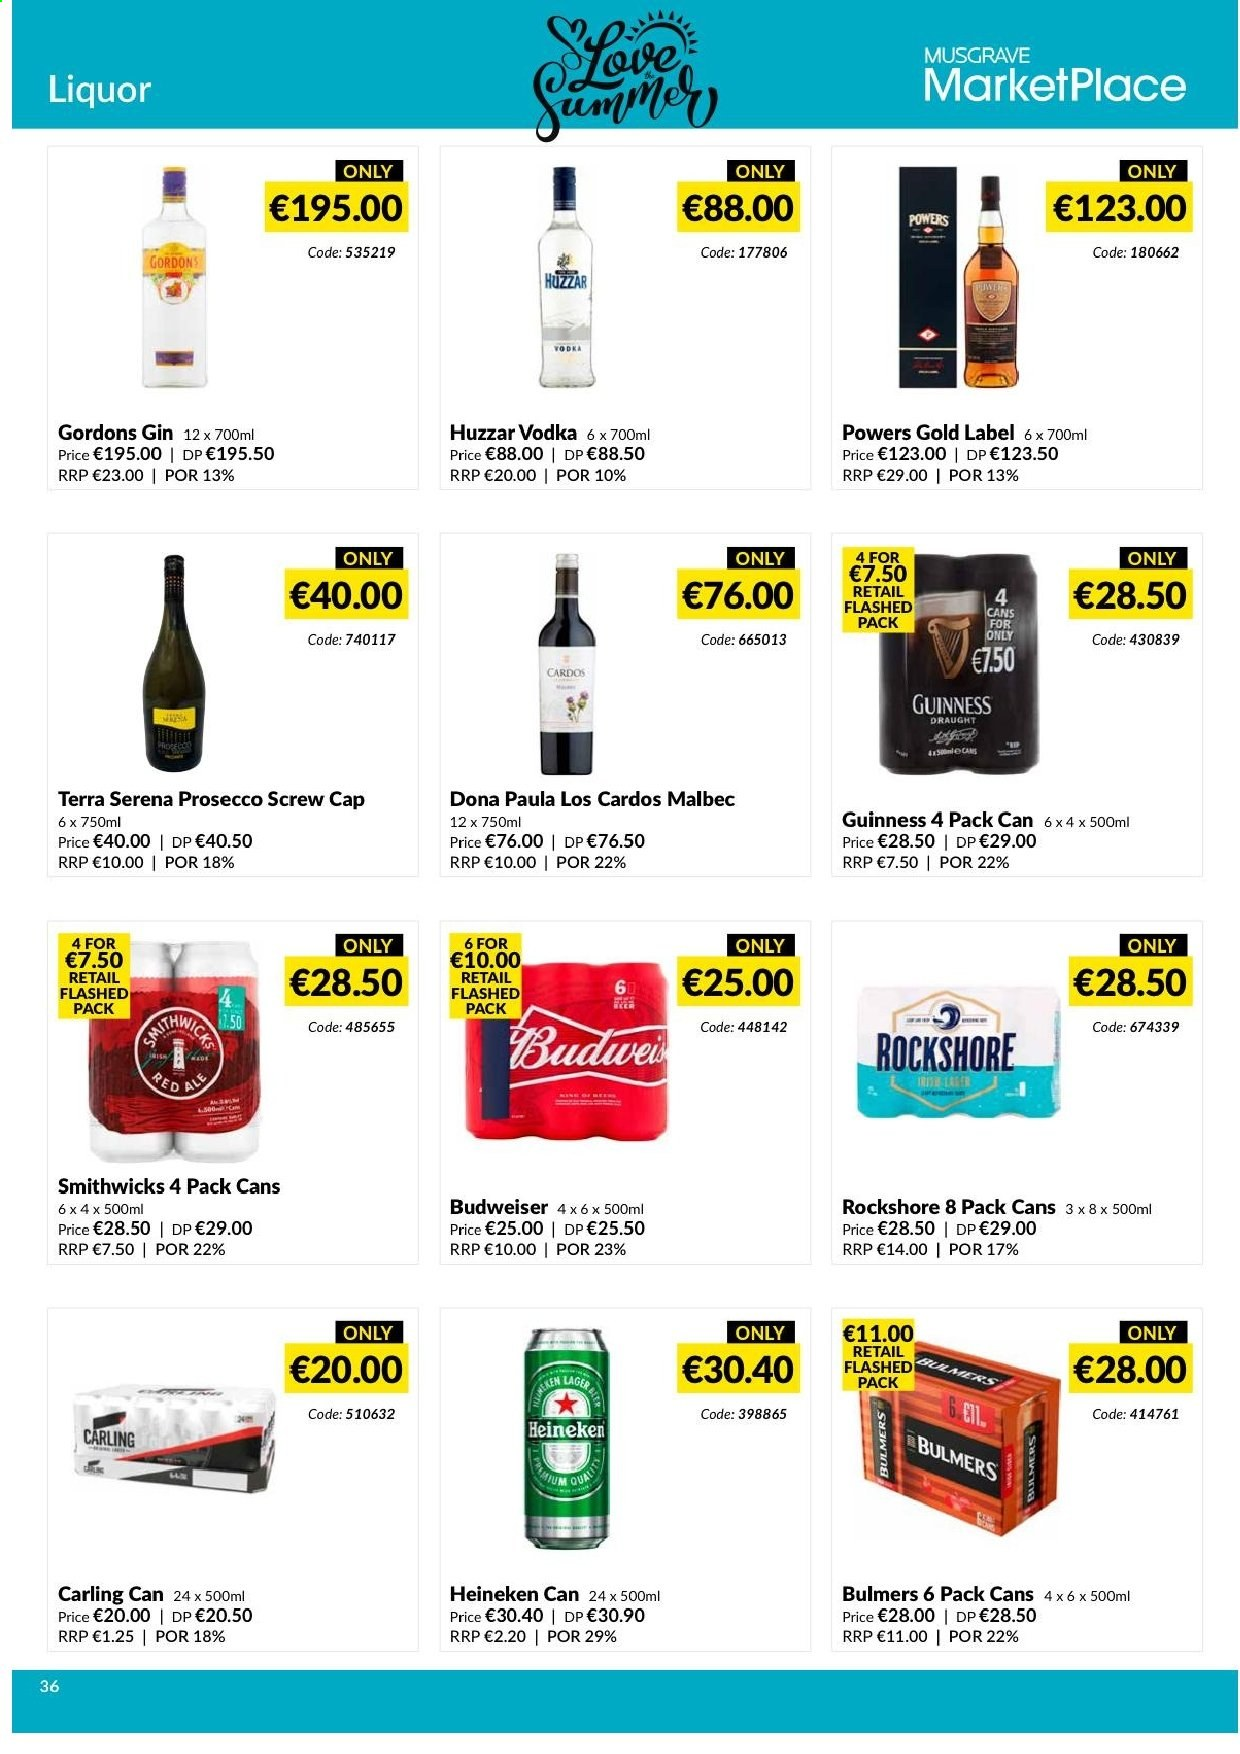 MUSGRAVE Market Place offer  - 9.6.2019 - 6.7.2019 - Sales products - Budweiser, prosecco, gin, vodka, liquor, beer, Heineken. Page 36.